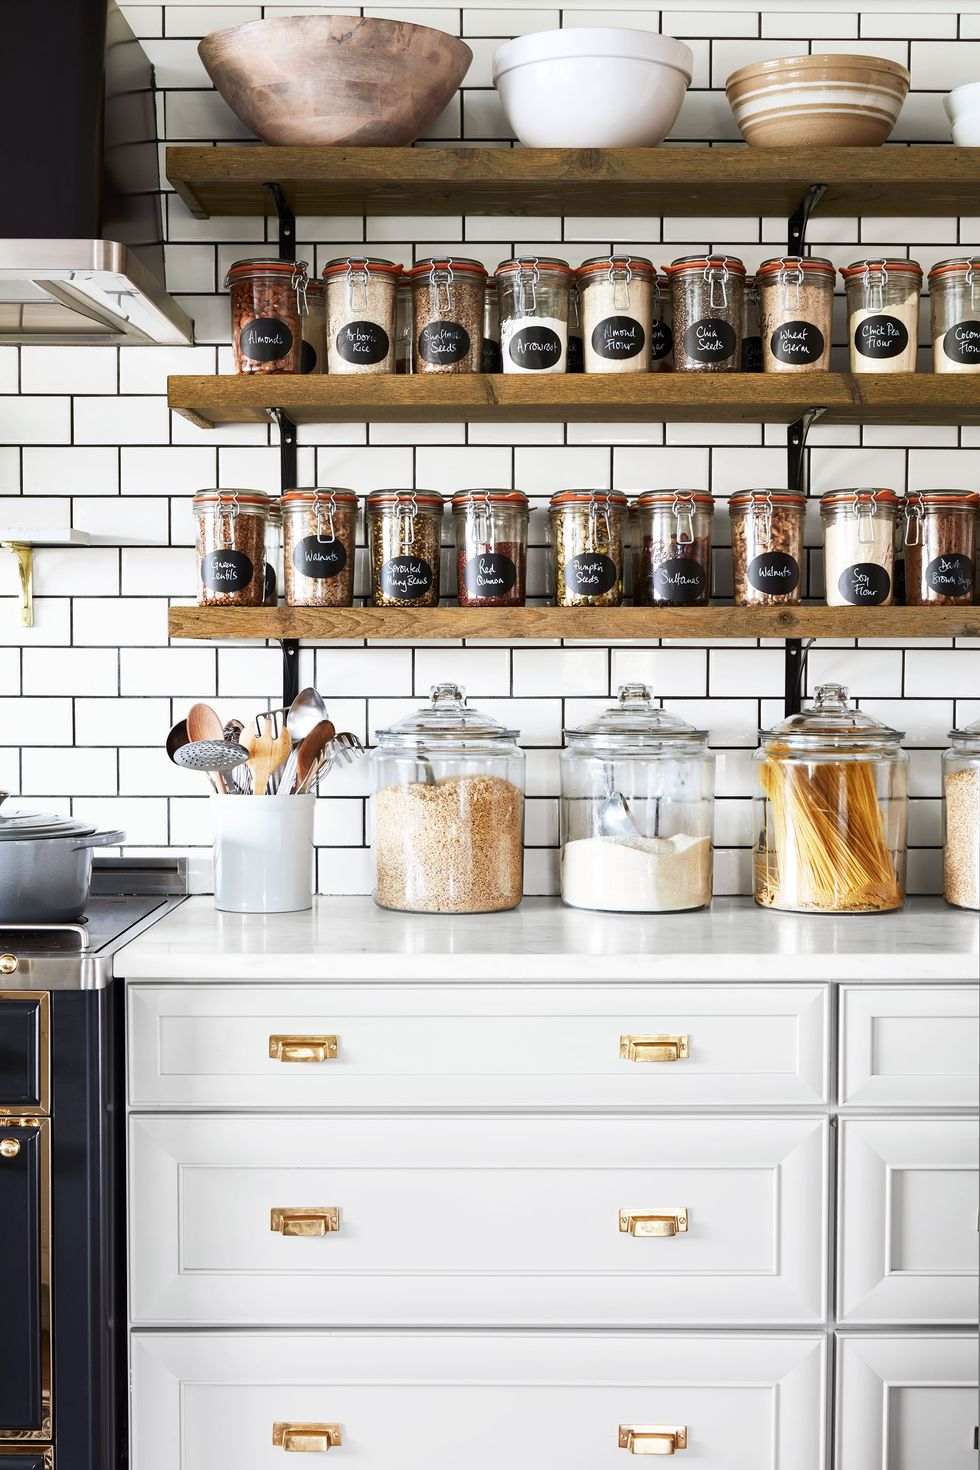 Tips to Organize the Kitchen and Free from Clutter